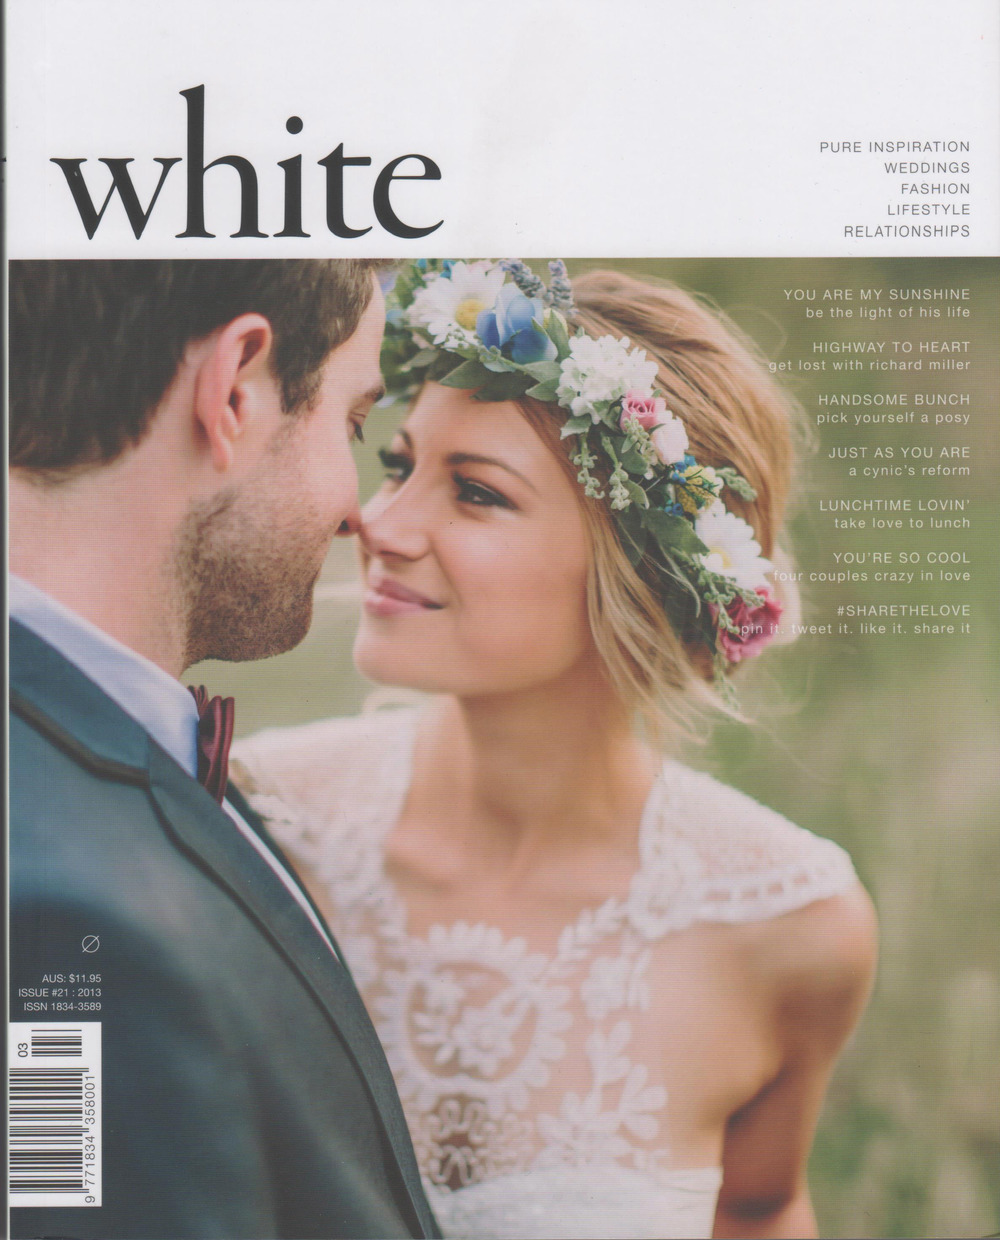 white issue 21.jpg